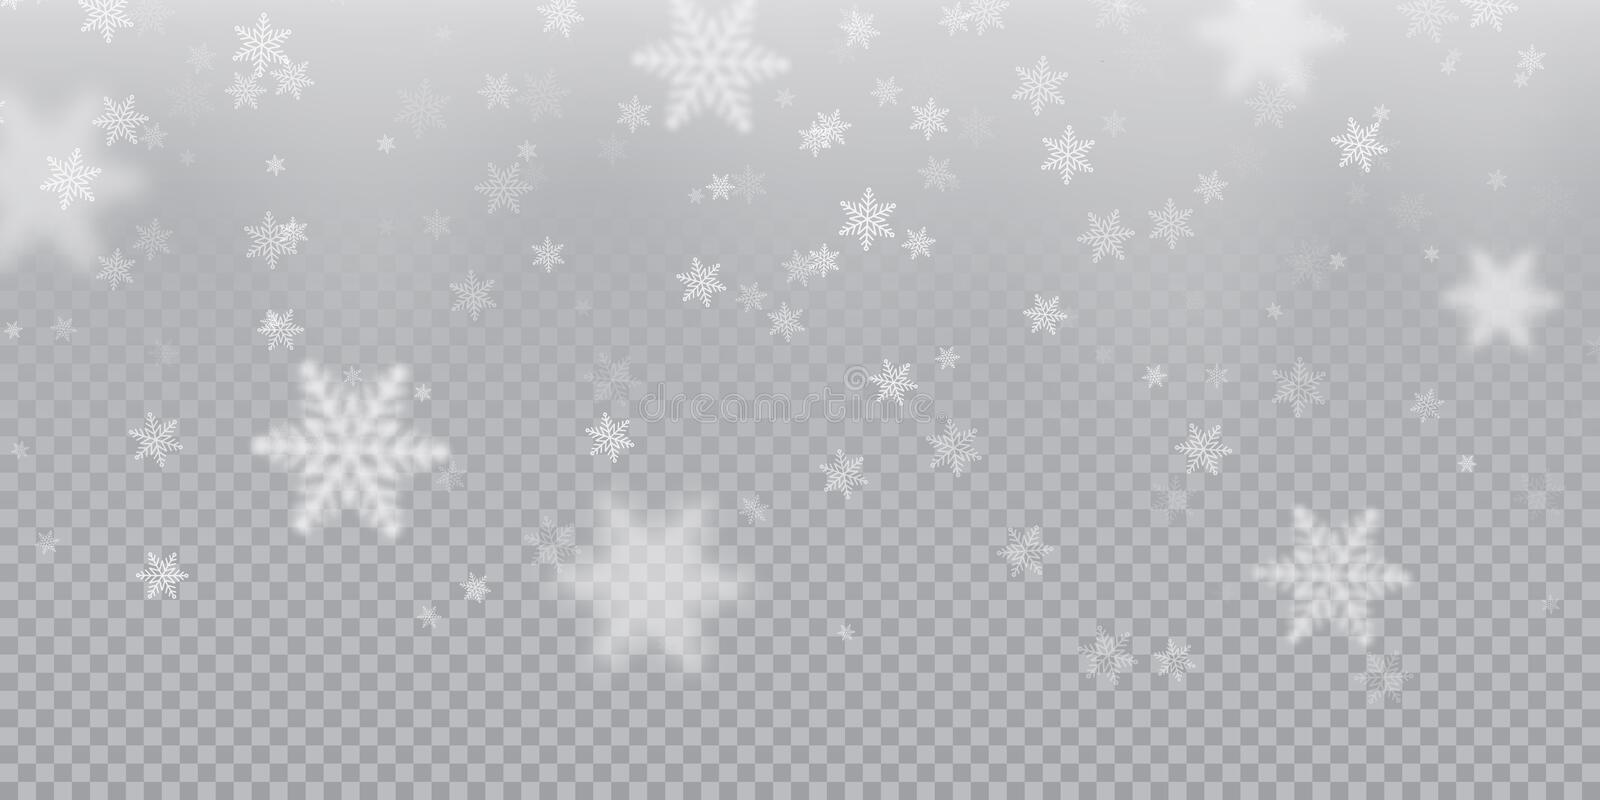 Falling snowflake pattern background of white cold snowfall overlay texture on transparent background. Winter Xmas snow f stock illustration